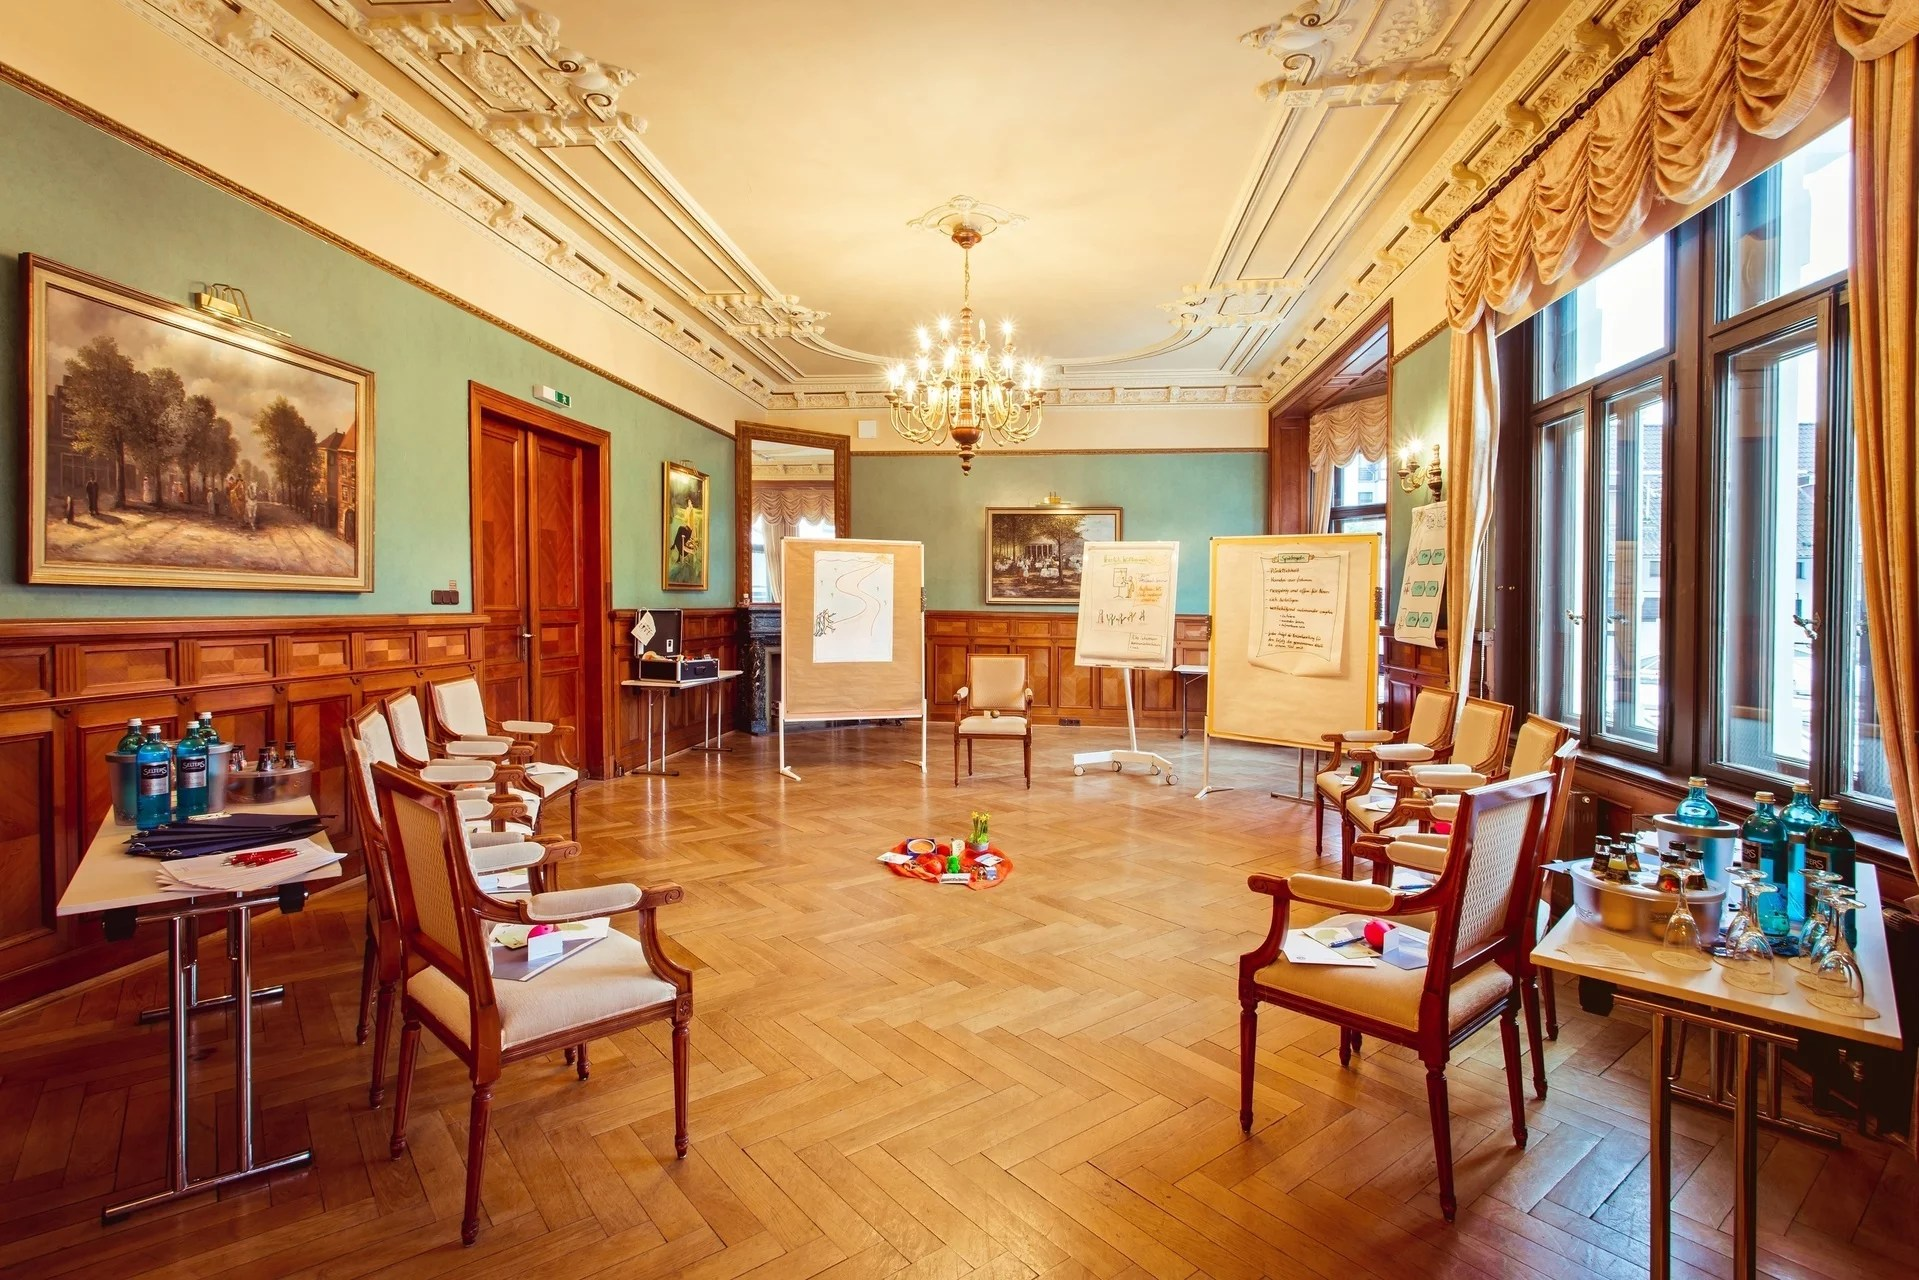 Family Club Harz Conferences Incentives Romantischer Winkel